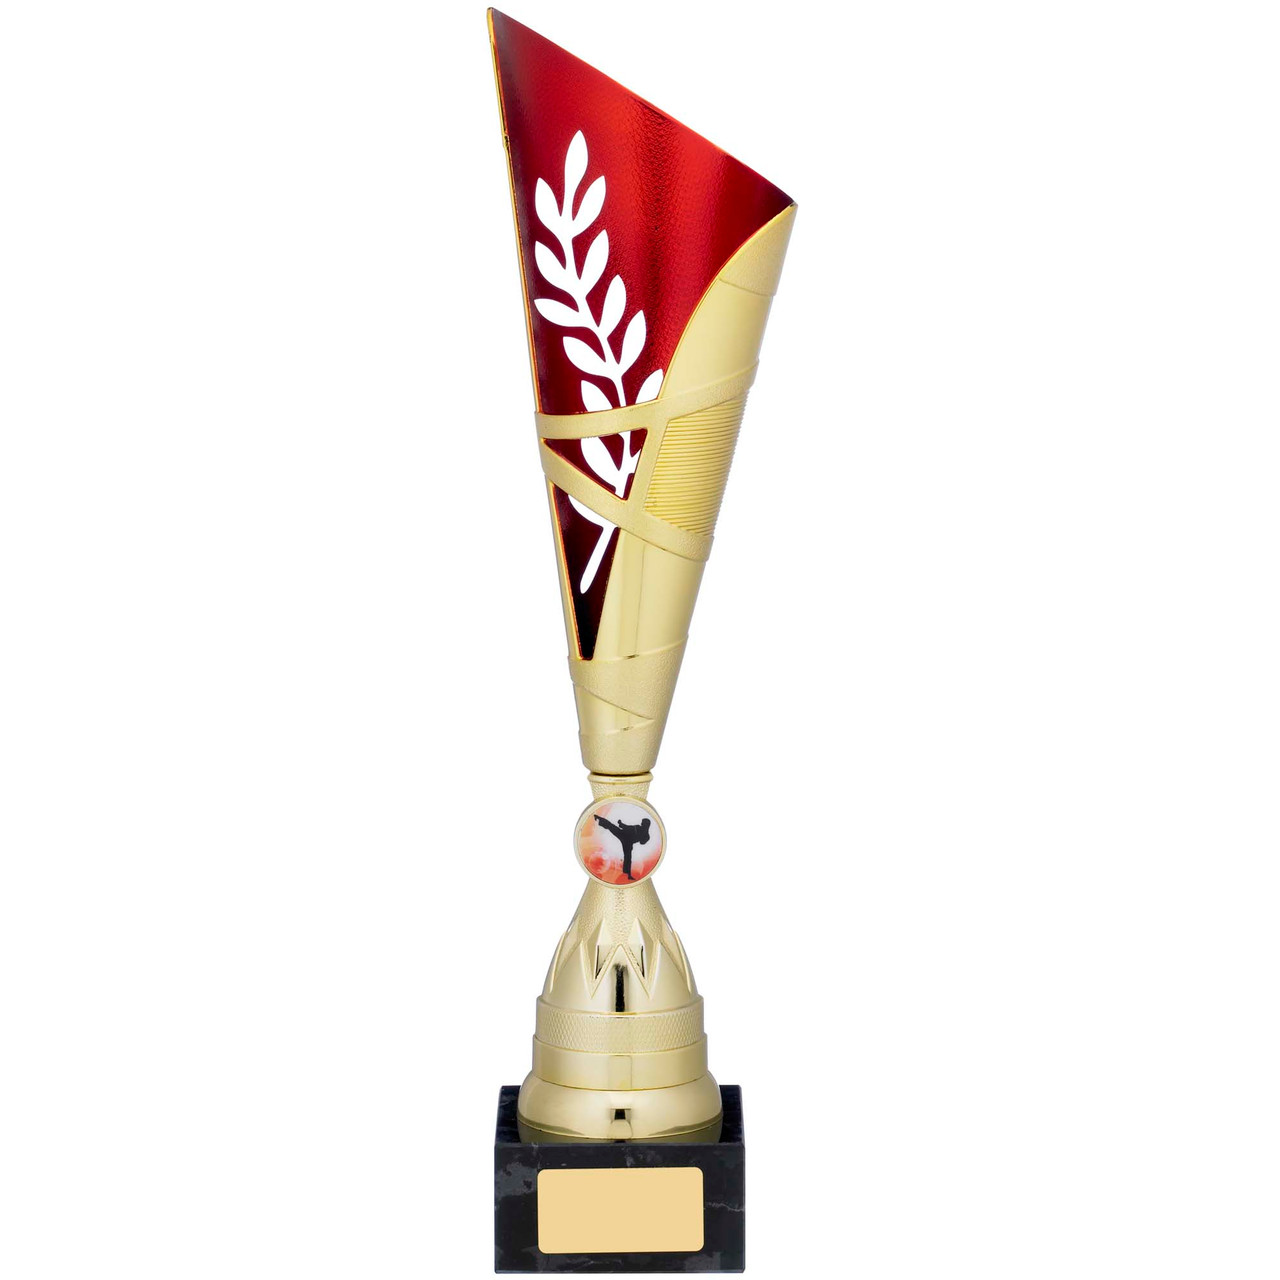 Laurel Class multisport trophy with FREE engraving